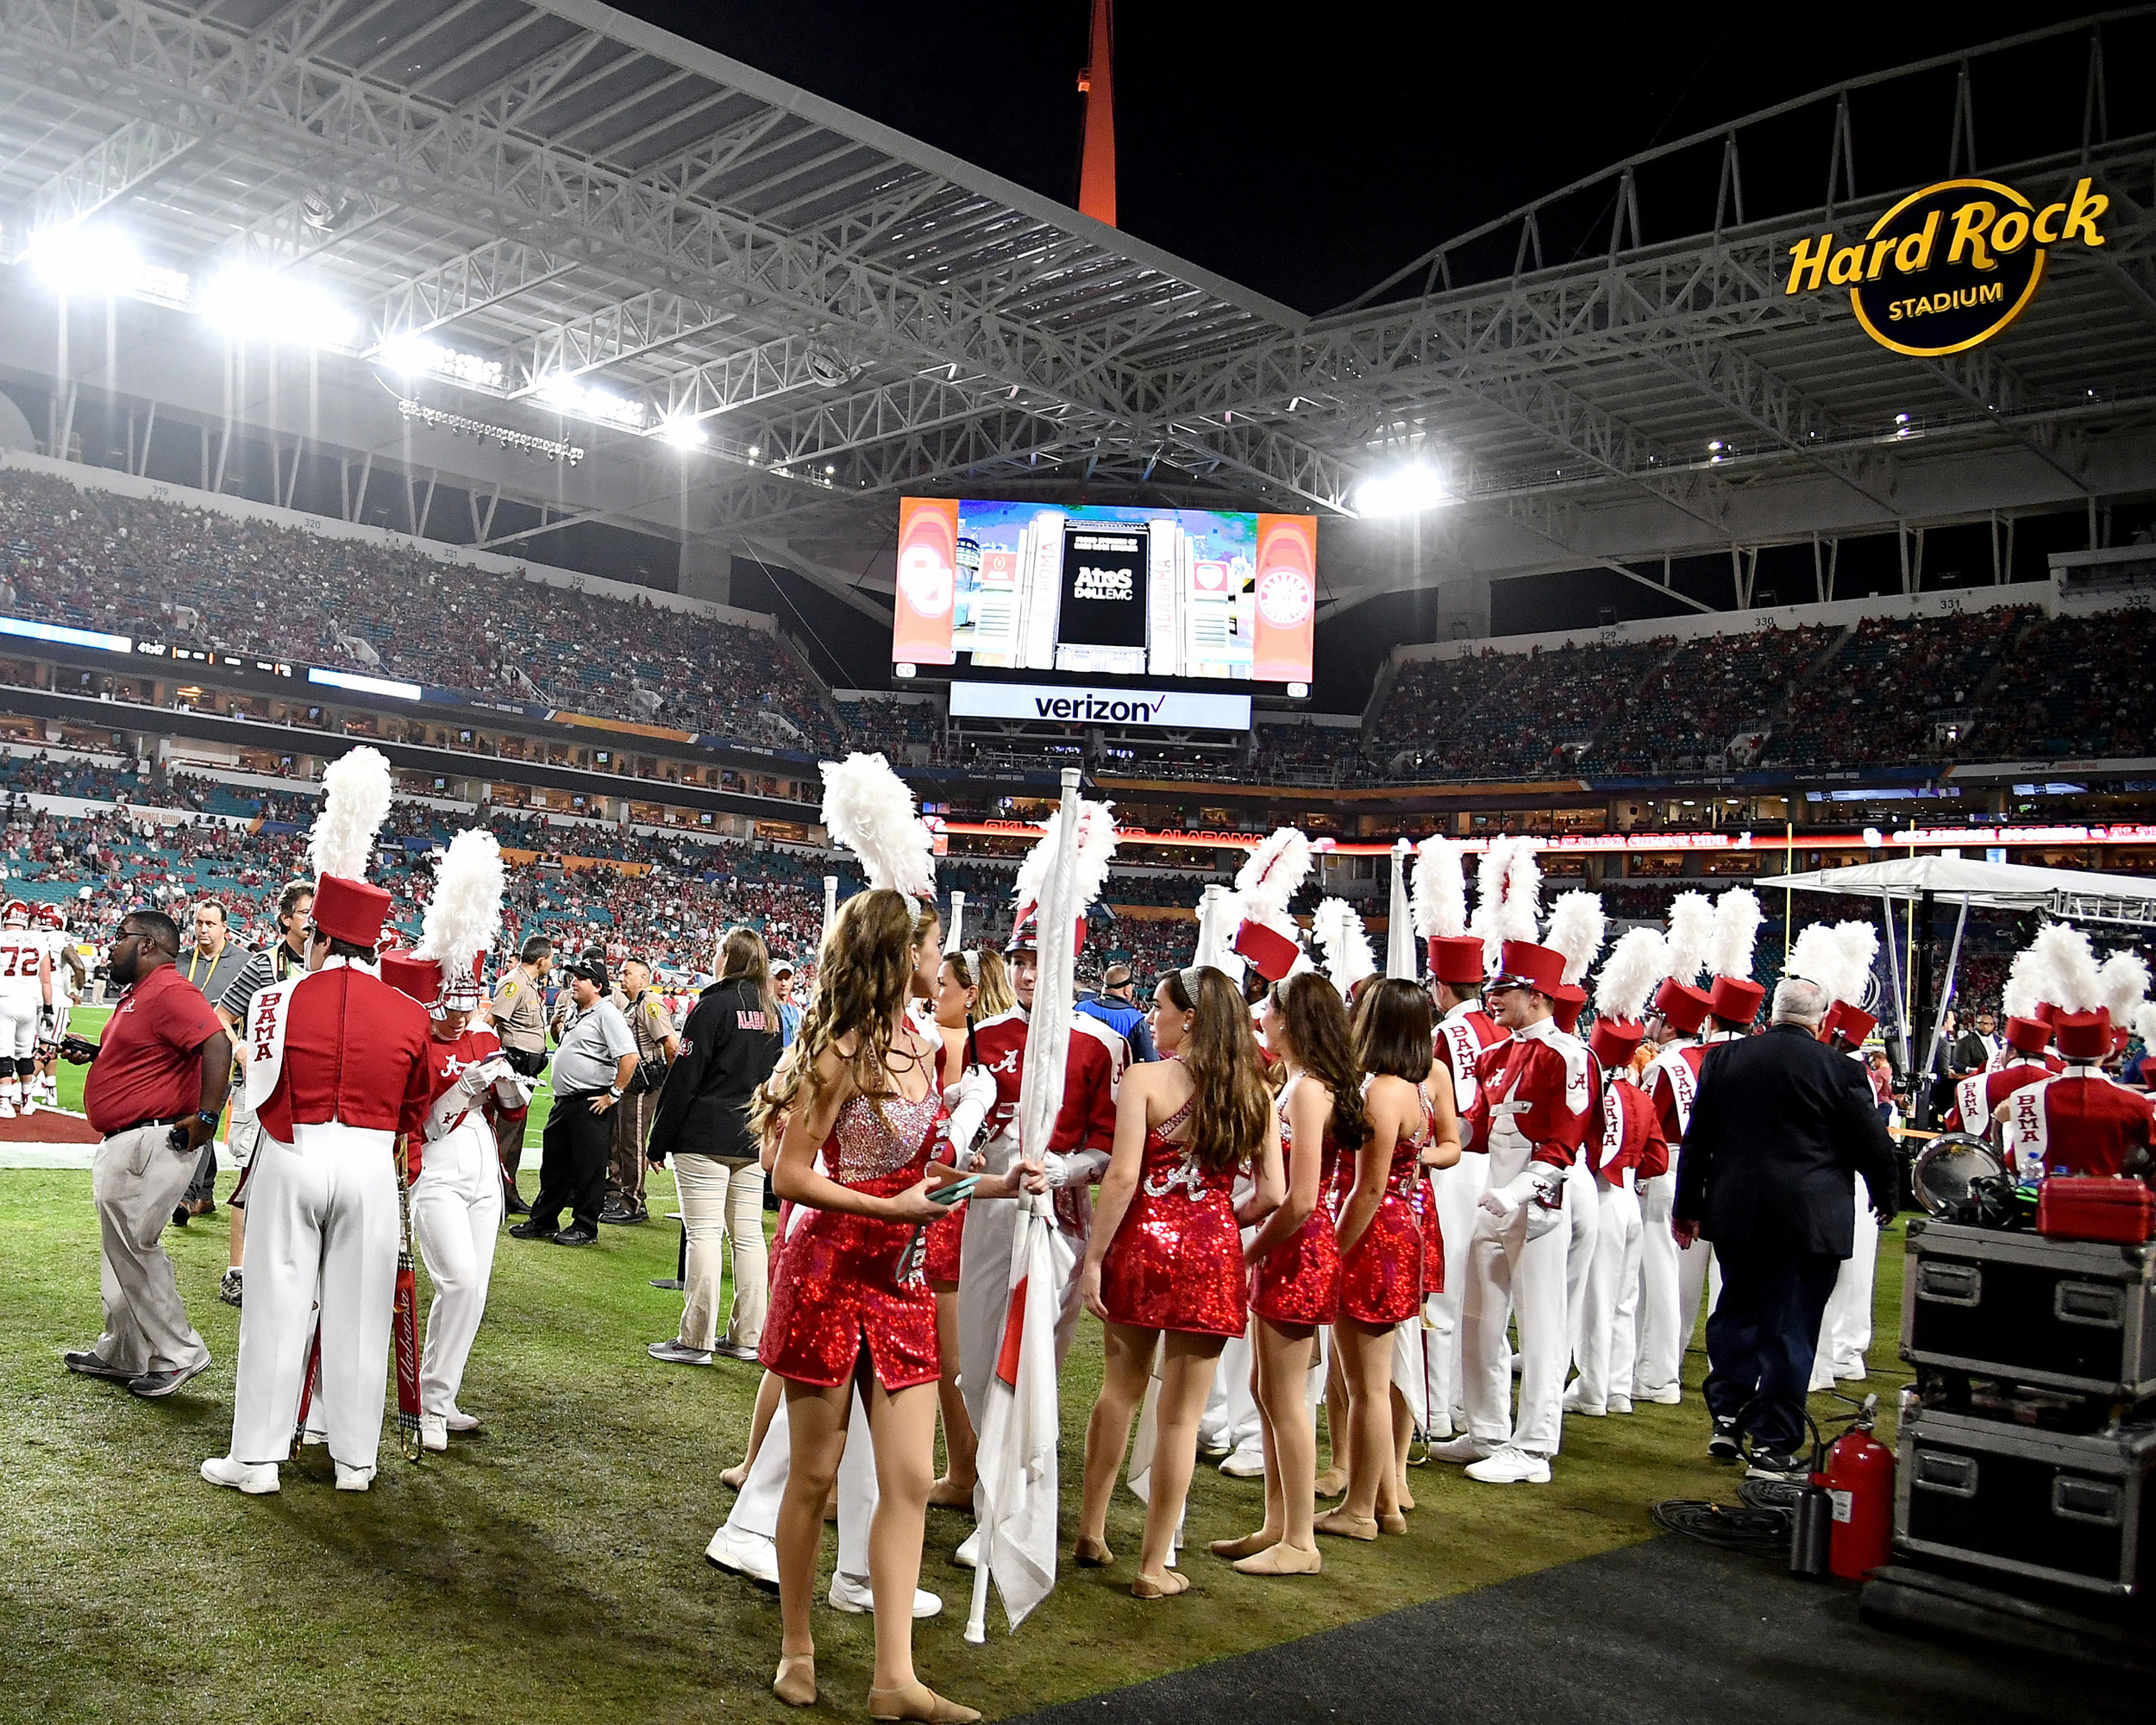 Getting ready to start the Capital One Orange Bowl, featuring the Alabama Crimson Tide and the Oklahoma Sooners, at Hard Rock Stadium in Miami Gardens, Fla., Saturday, Dec. 29, 2018. Alabama wins 45-34. (Photo by Lee Walls)